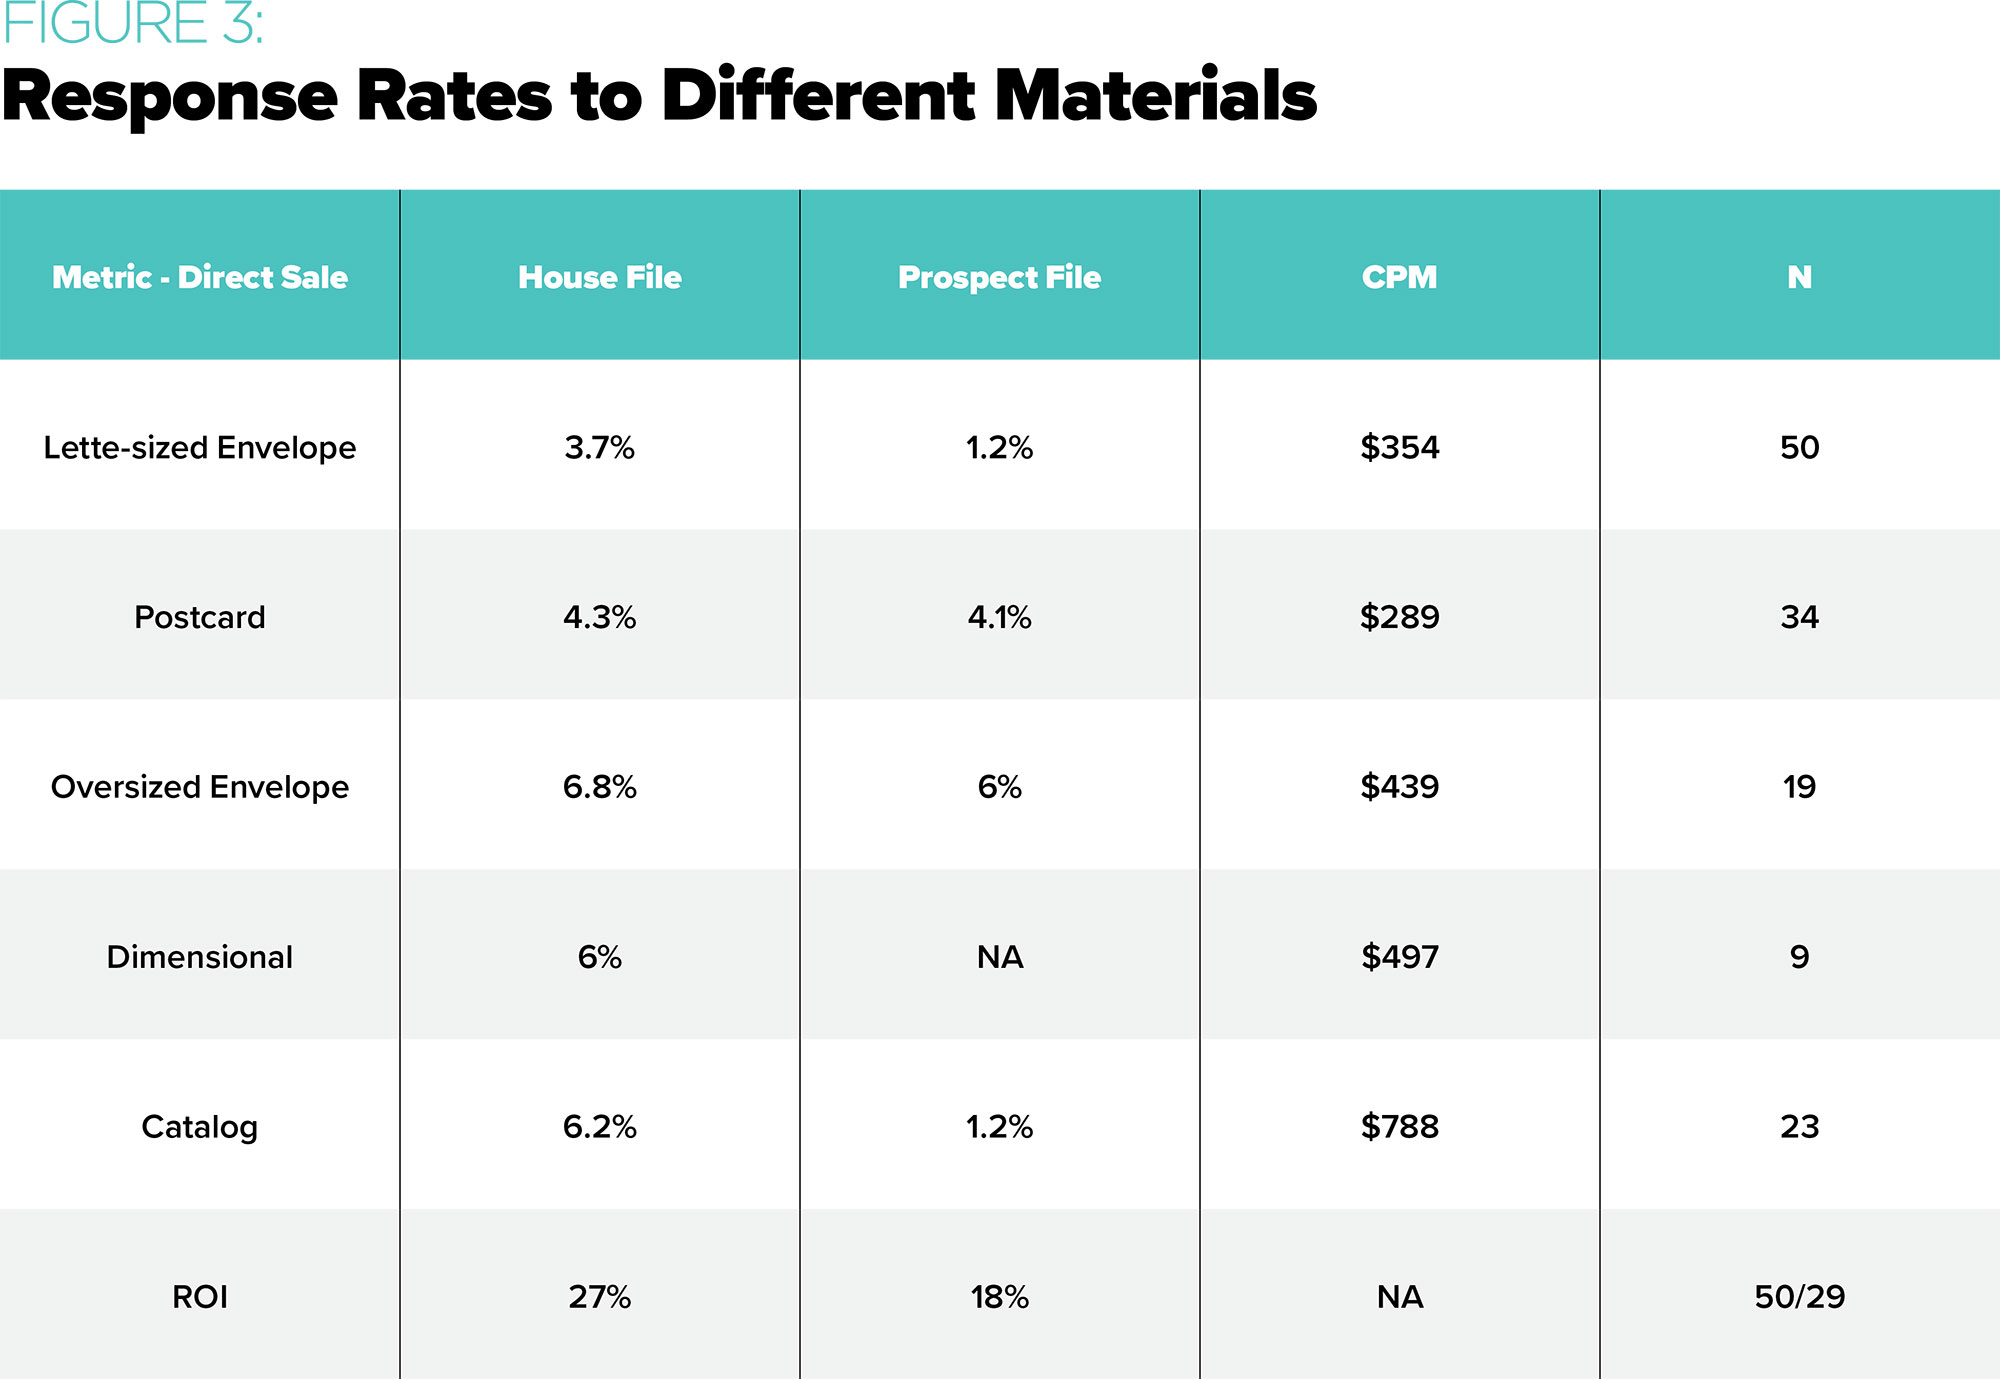 Response Rates to Different Materials